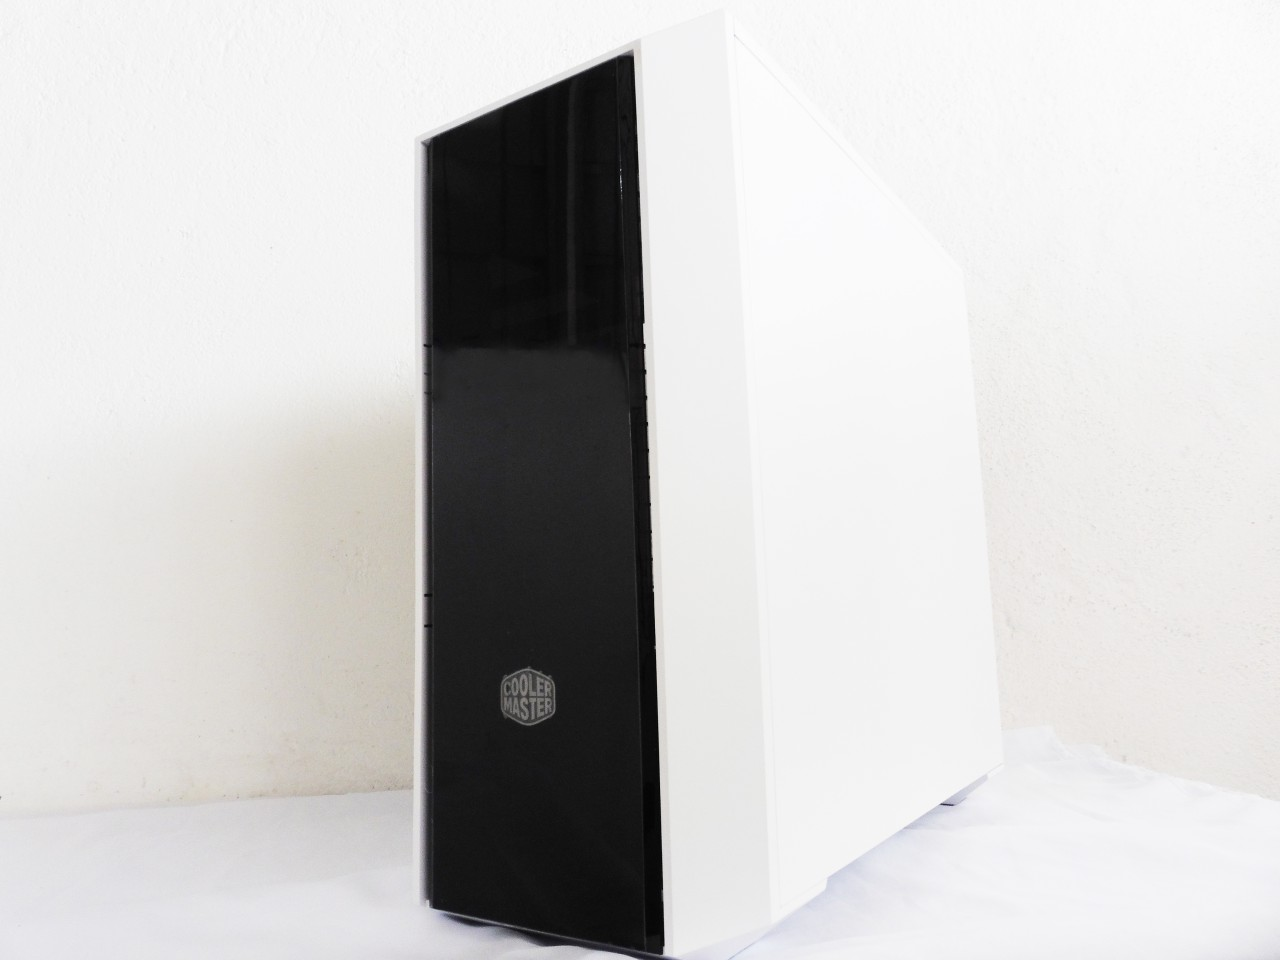 Cooler Master MasterBox 5 Dual Tone Review 5